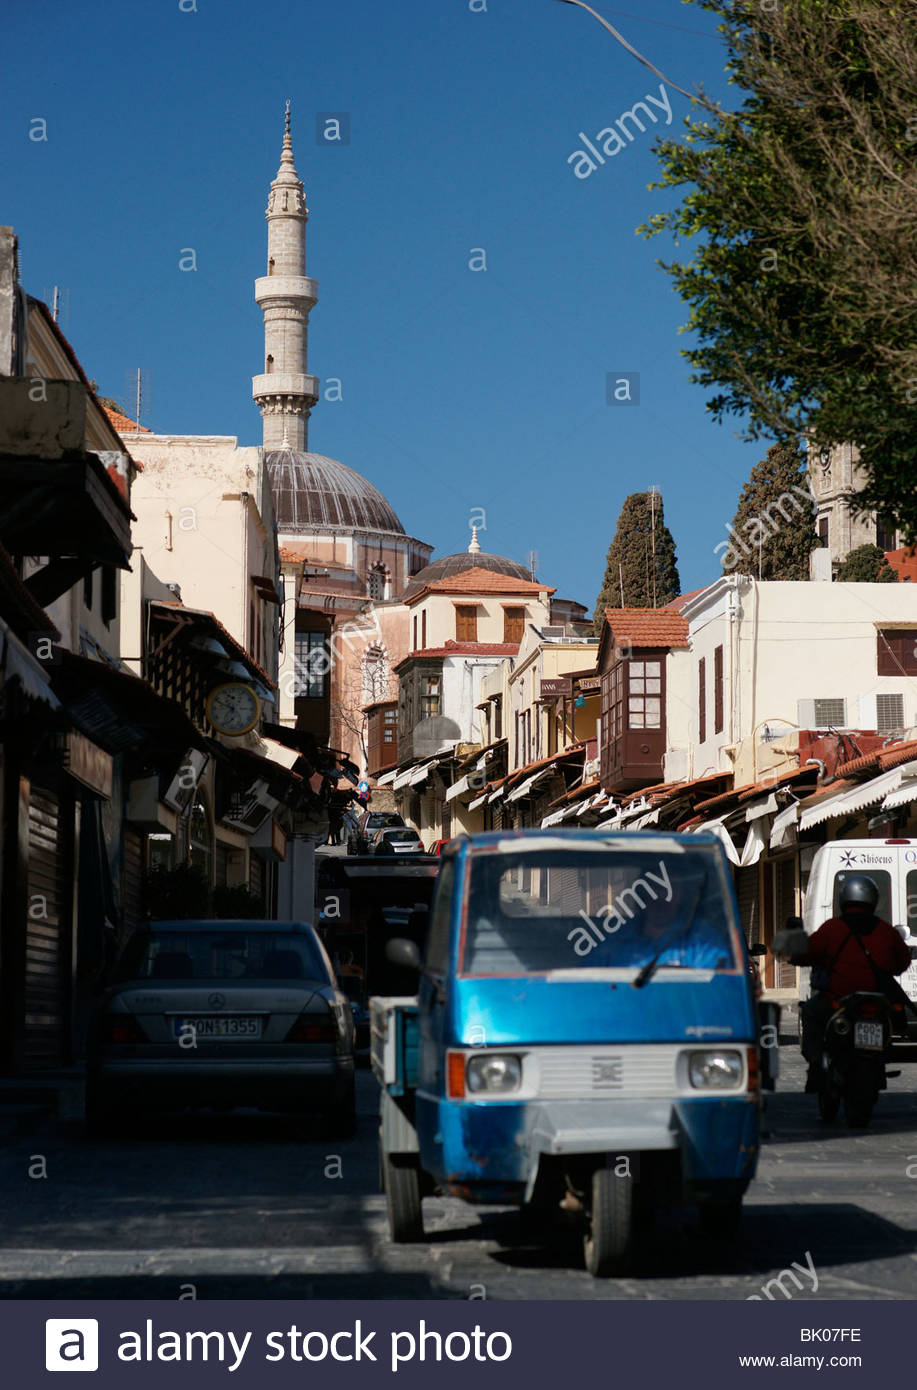 Old Town Rhodes Greece street scene showing Turkish minaret - Stock Image